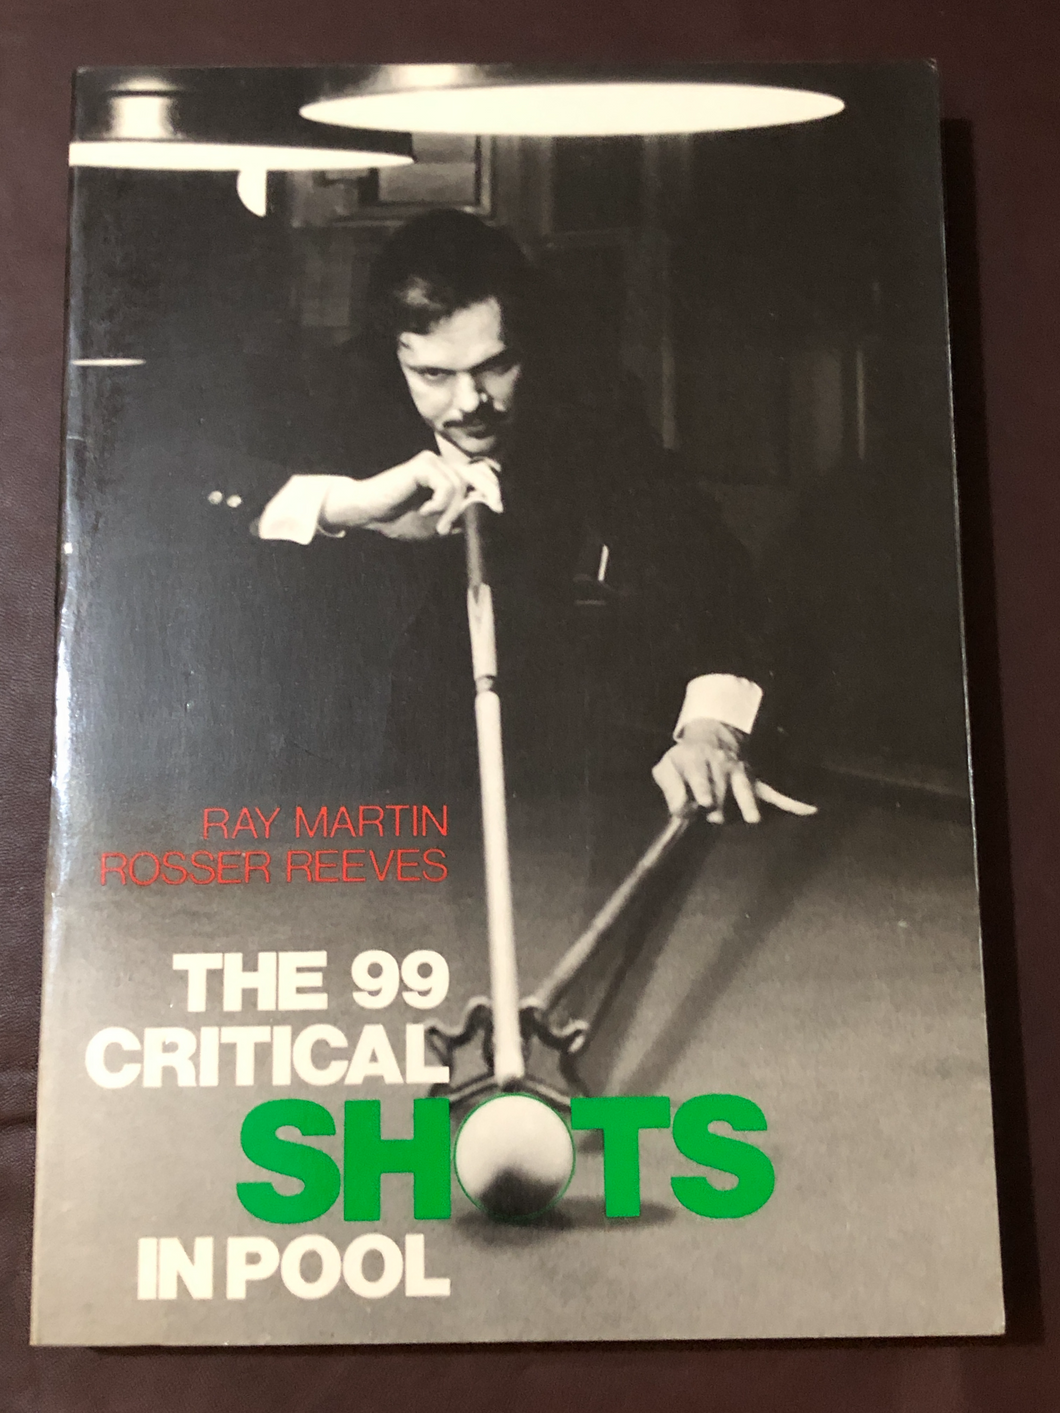 The 99 Critical Shots in Pool by Ray Martin